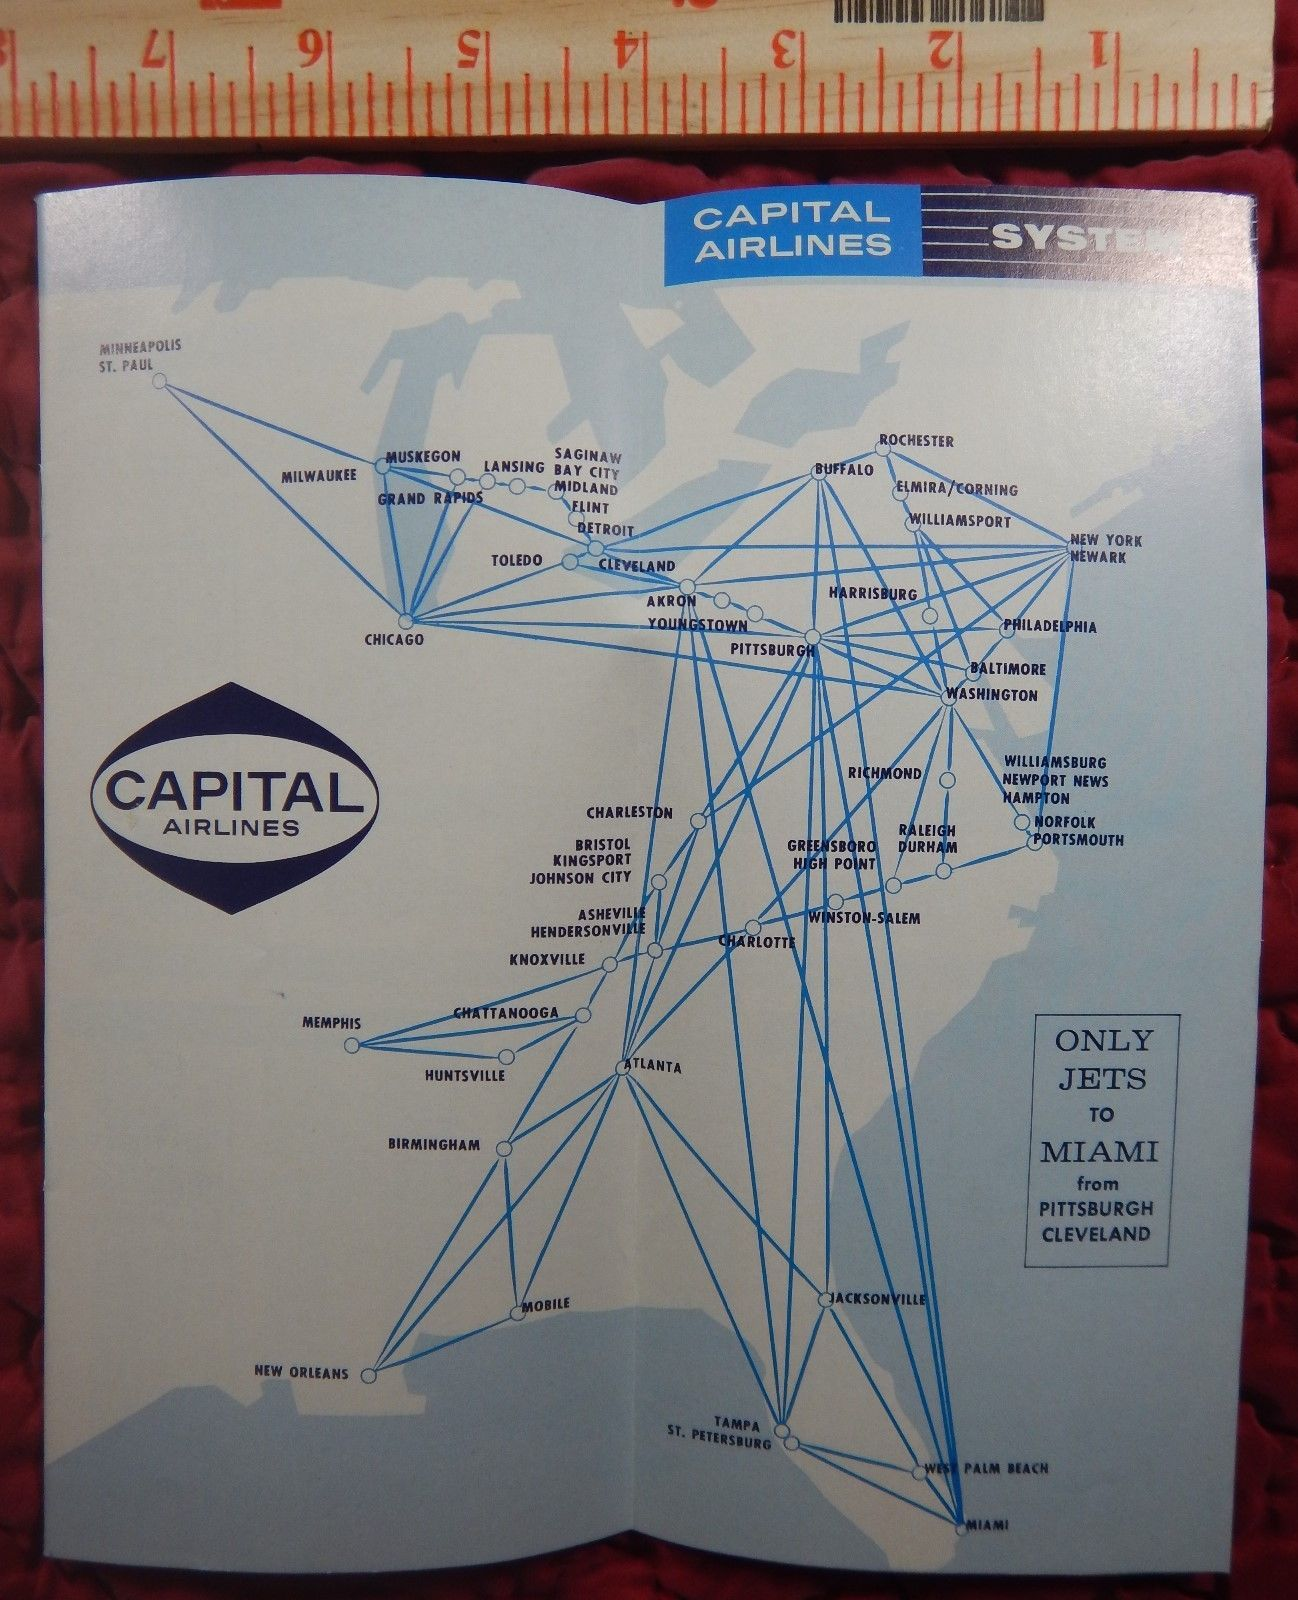 1961 Capital Airlines Timetable in 2019 Detroit news